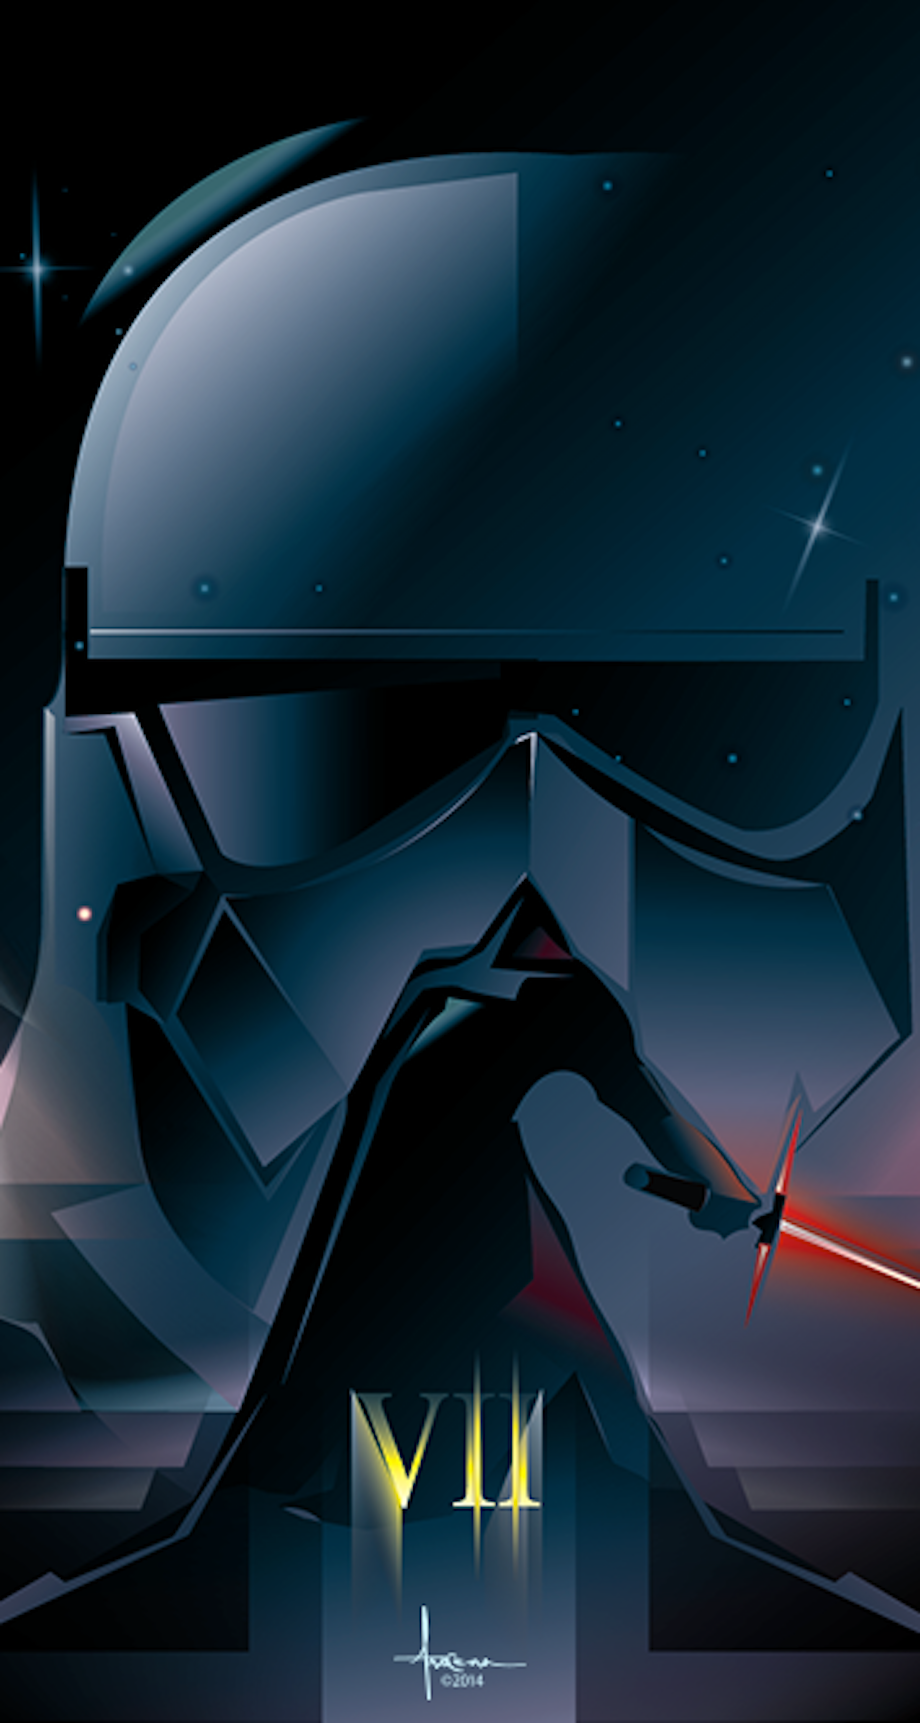 Download These Star Wars Wallpapers Now FOOYOH ENTERTAINMENT